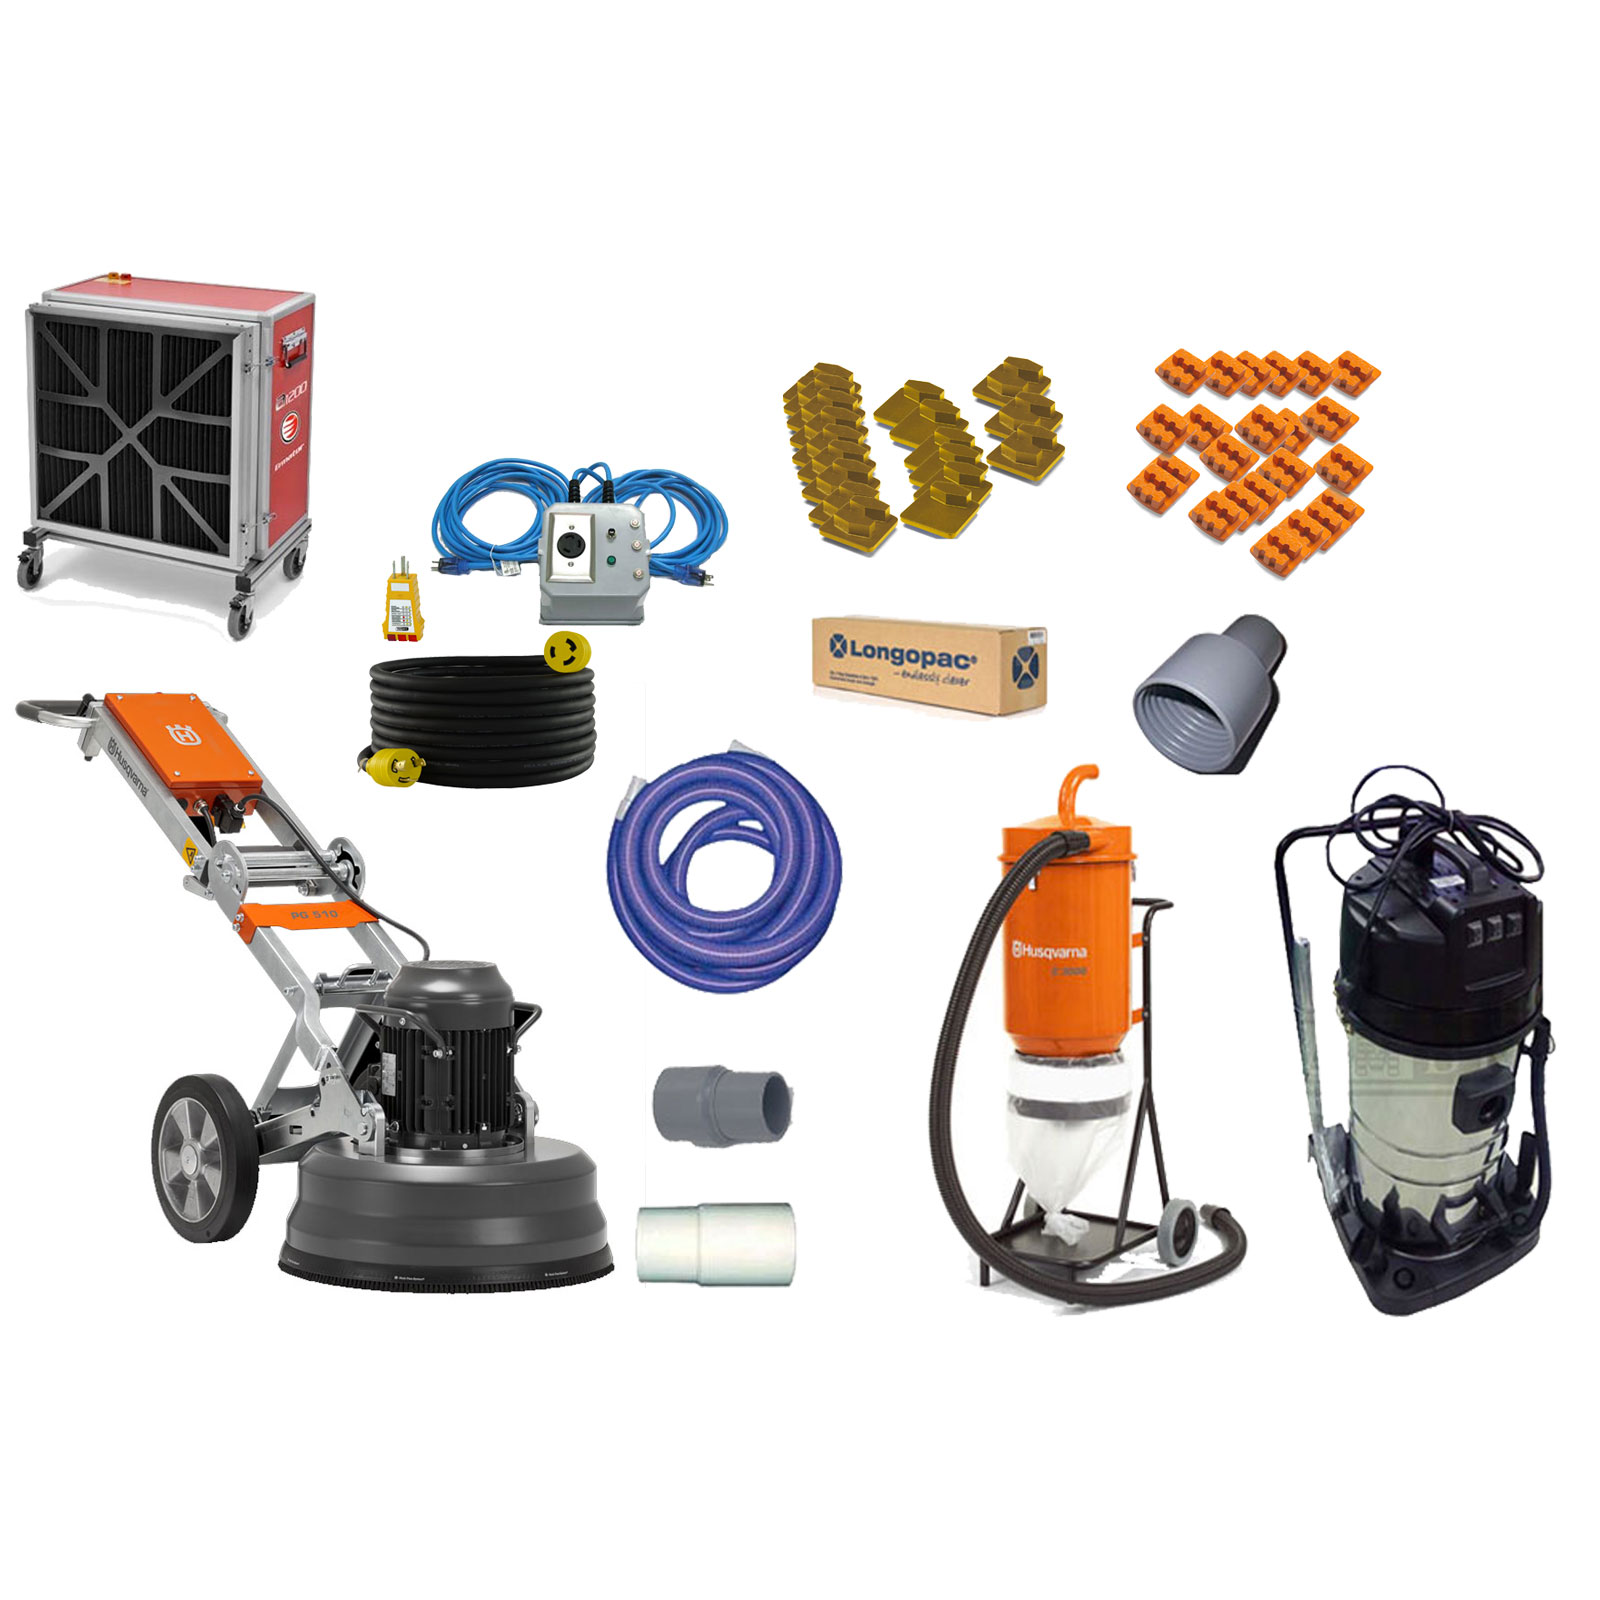 Husqvarna PG 510 Concrete Floor Grinder 240v 15Amp 4Hp 20 Inch 07597023 Power Supply Vacuum PG510 No Generator Required